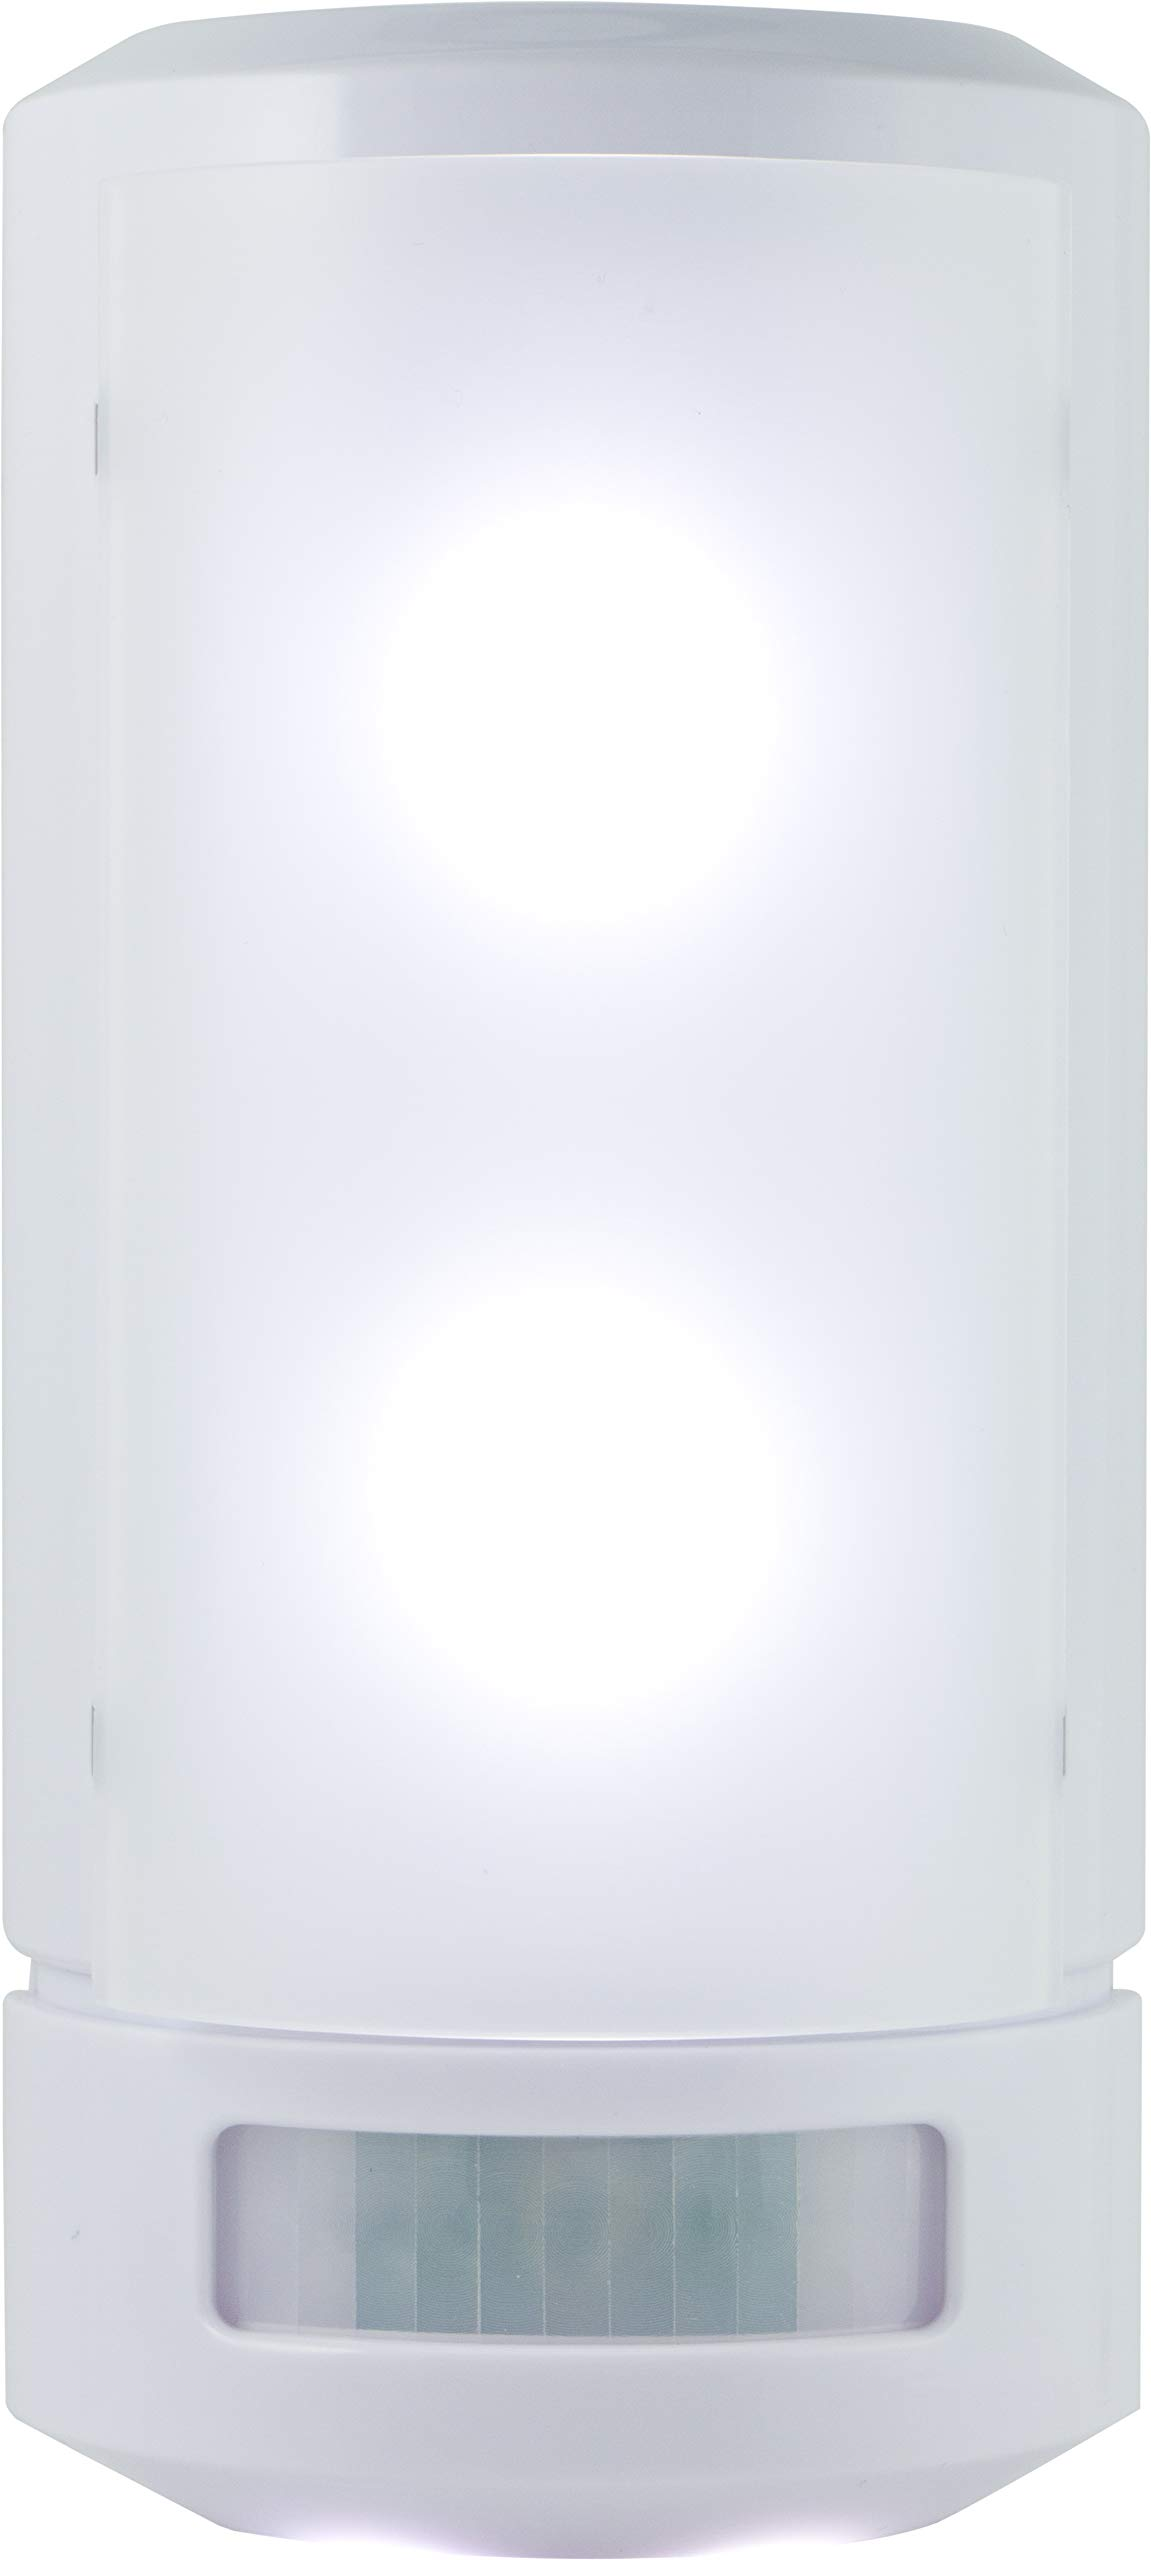 GE Wireless LED Wall Sconce, Motion Sensing and Manual On/Off Operating Modes, White, 17455